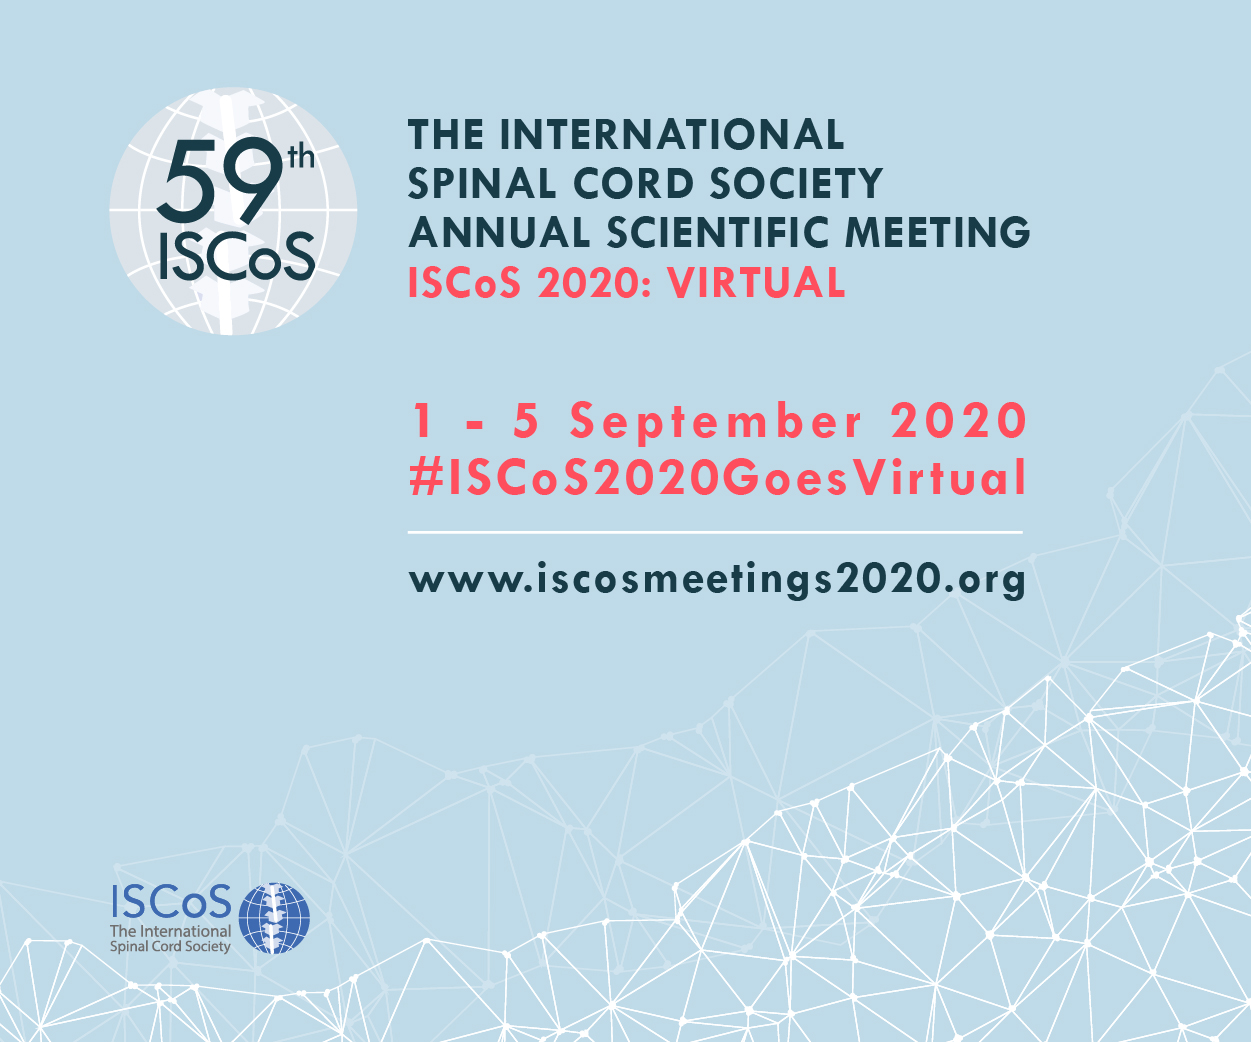 ISCoS2020 VIRTUAL Banners 300x250px LR